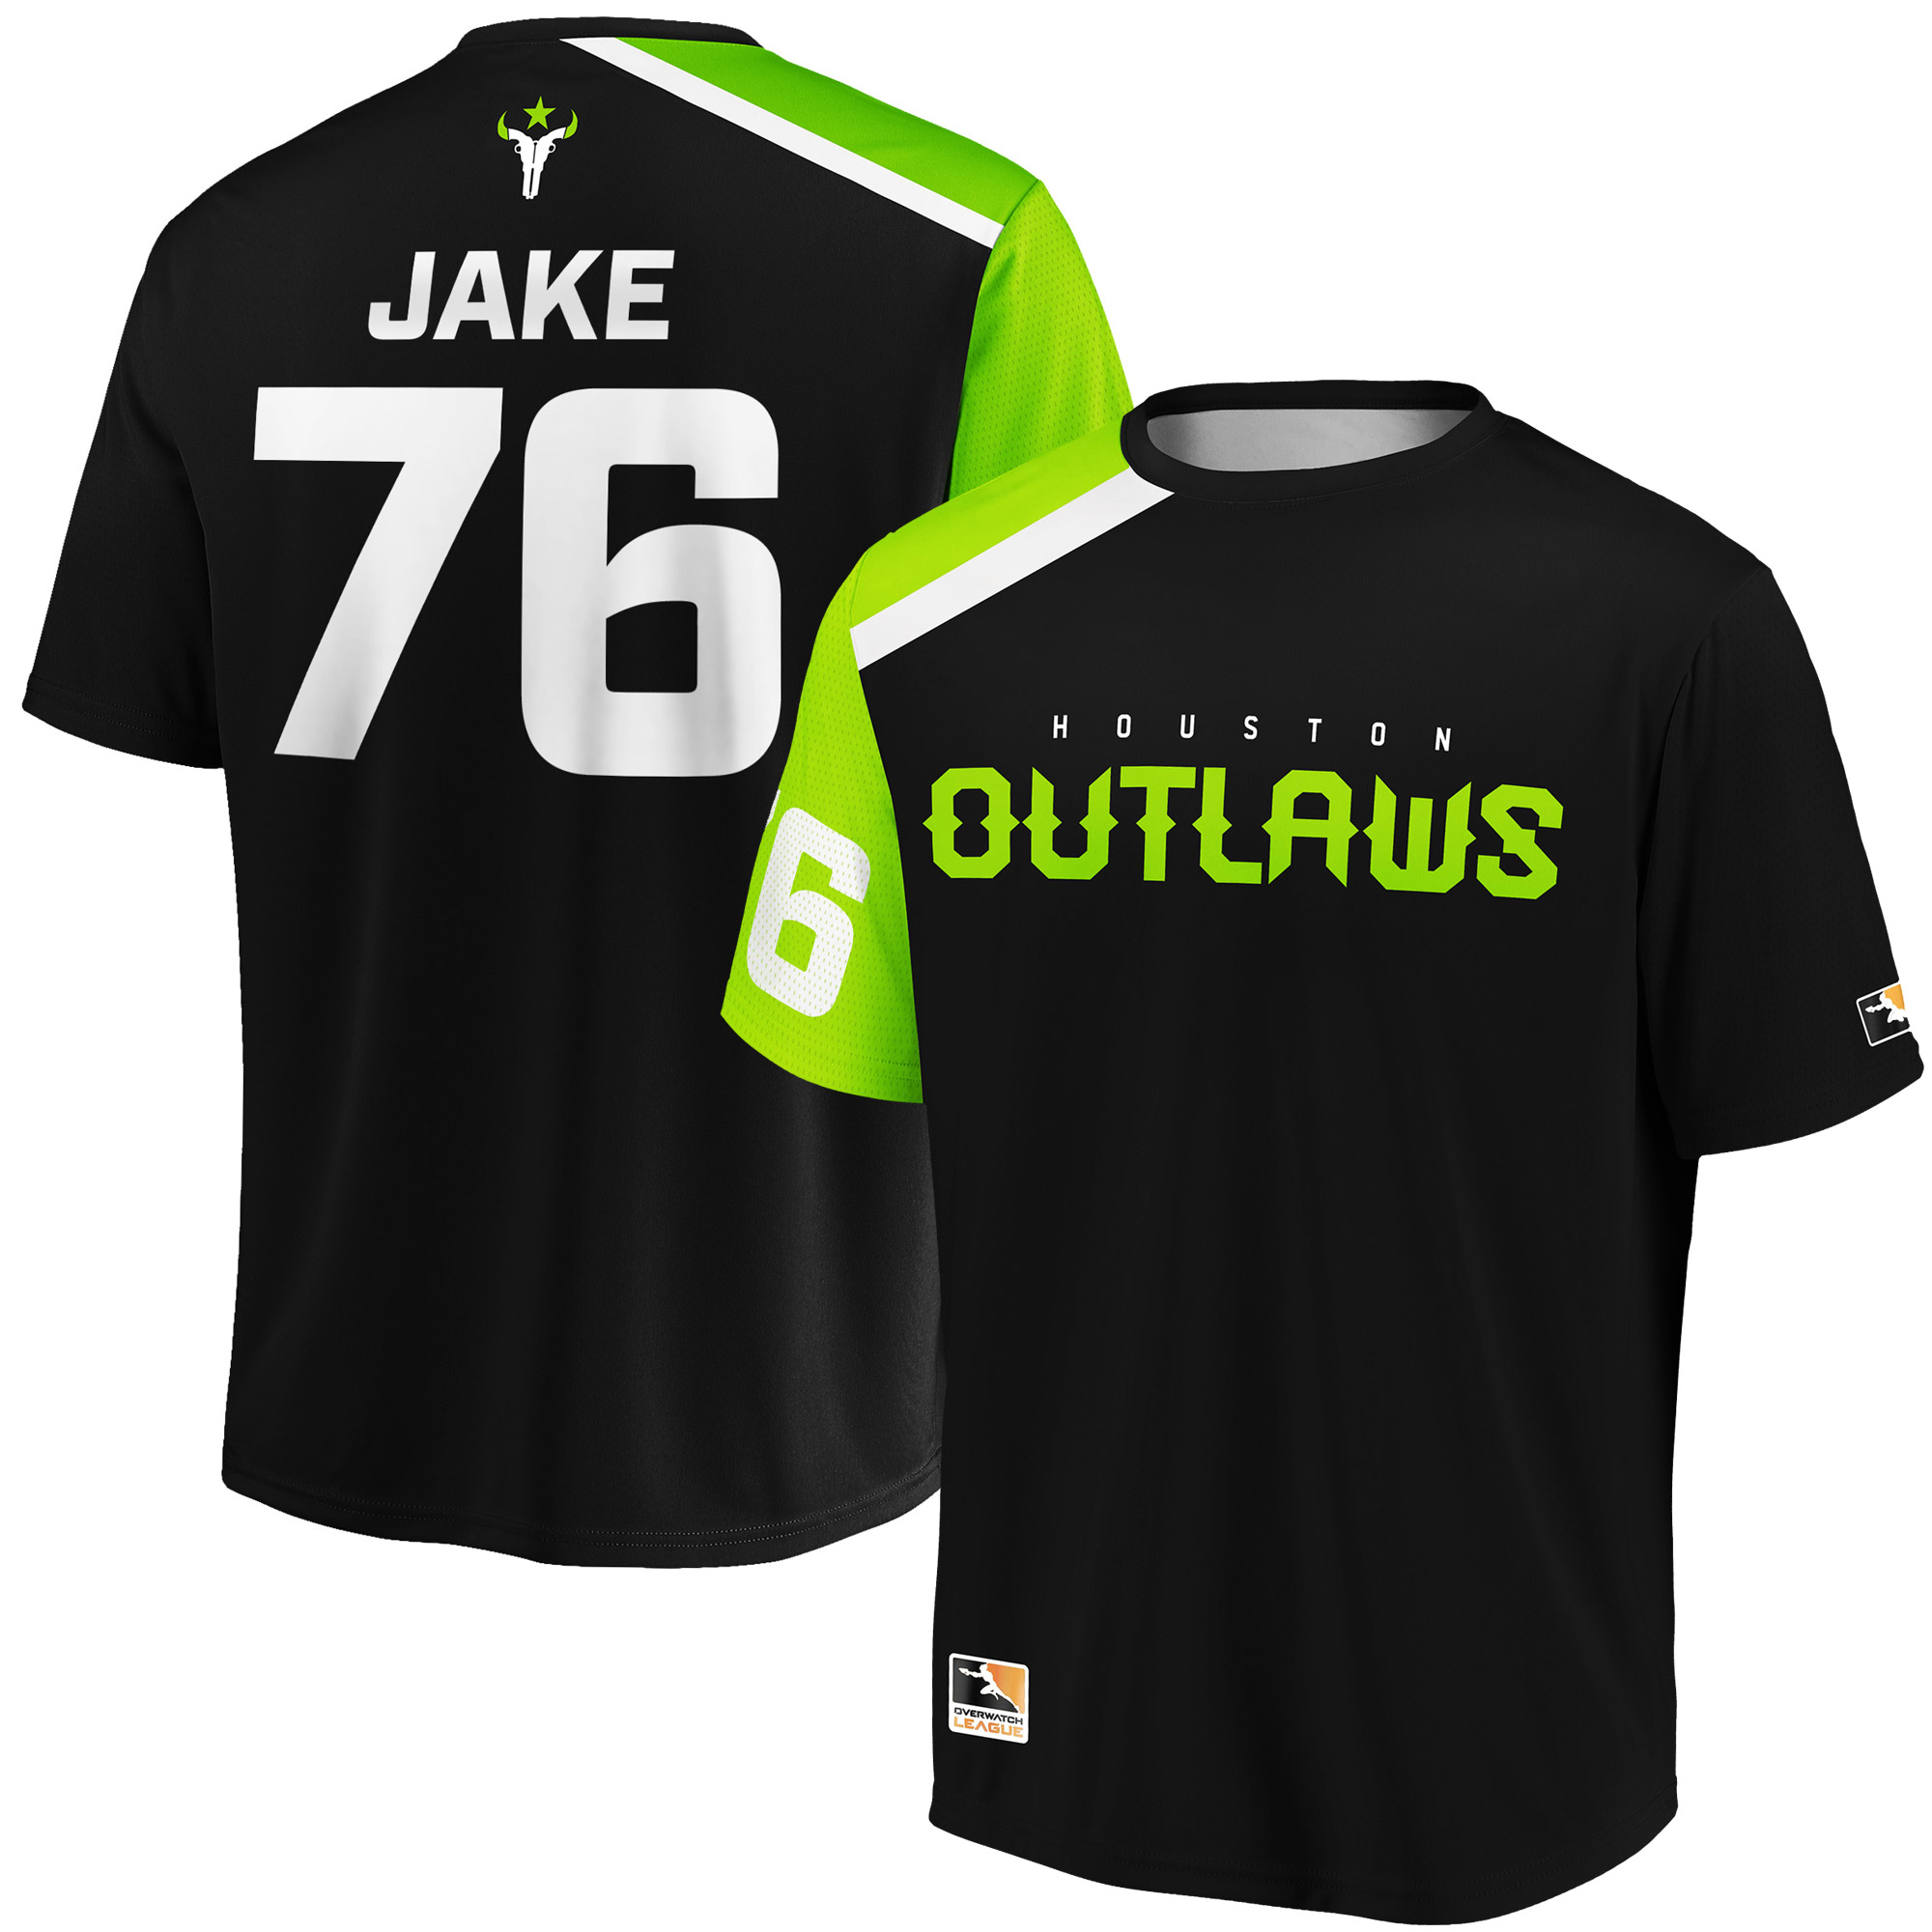 JAKE Houston Outlaws Overwatch League Replica Home Jersey - Black